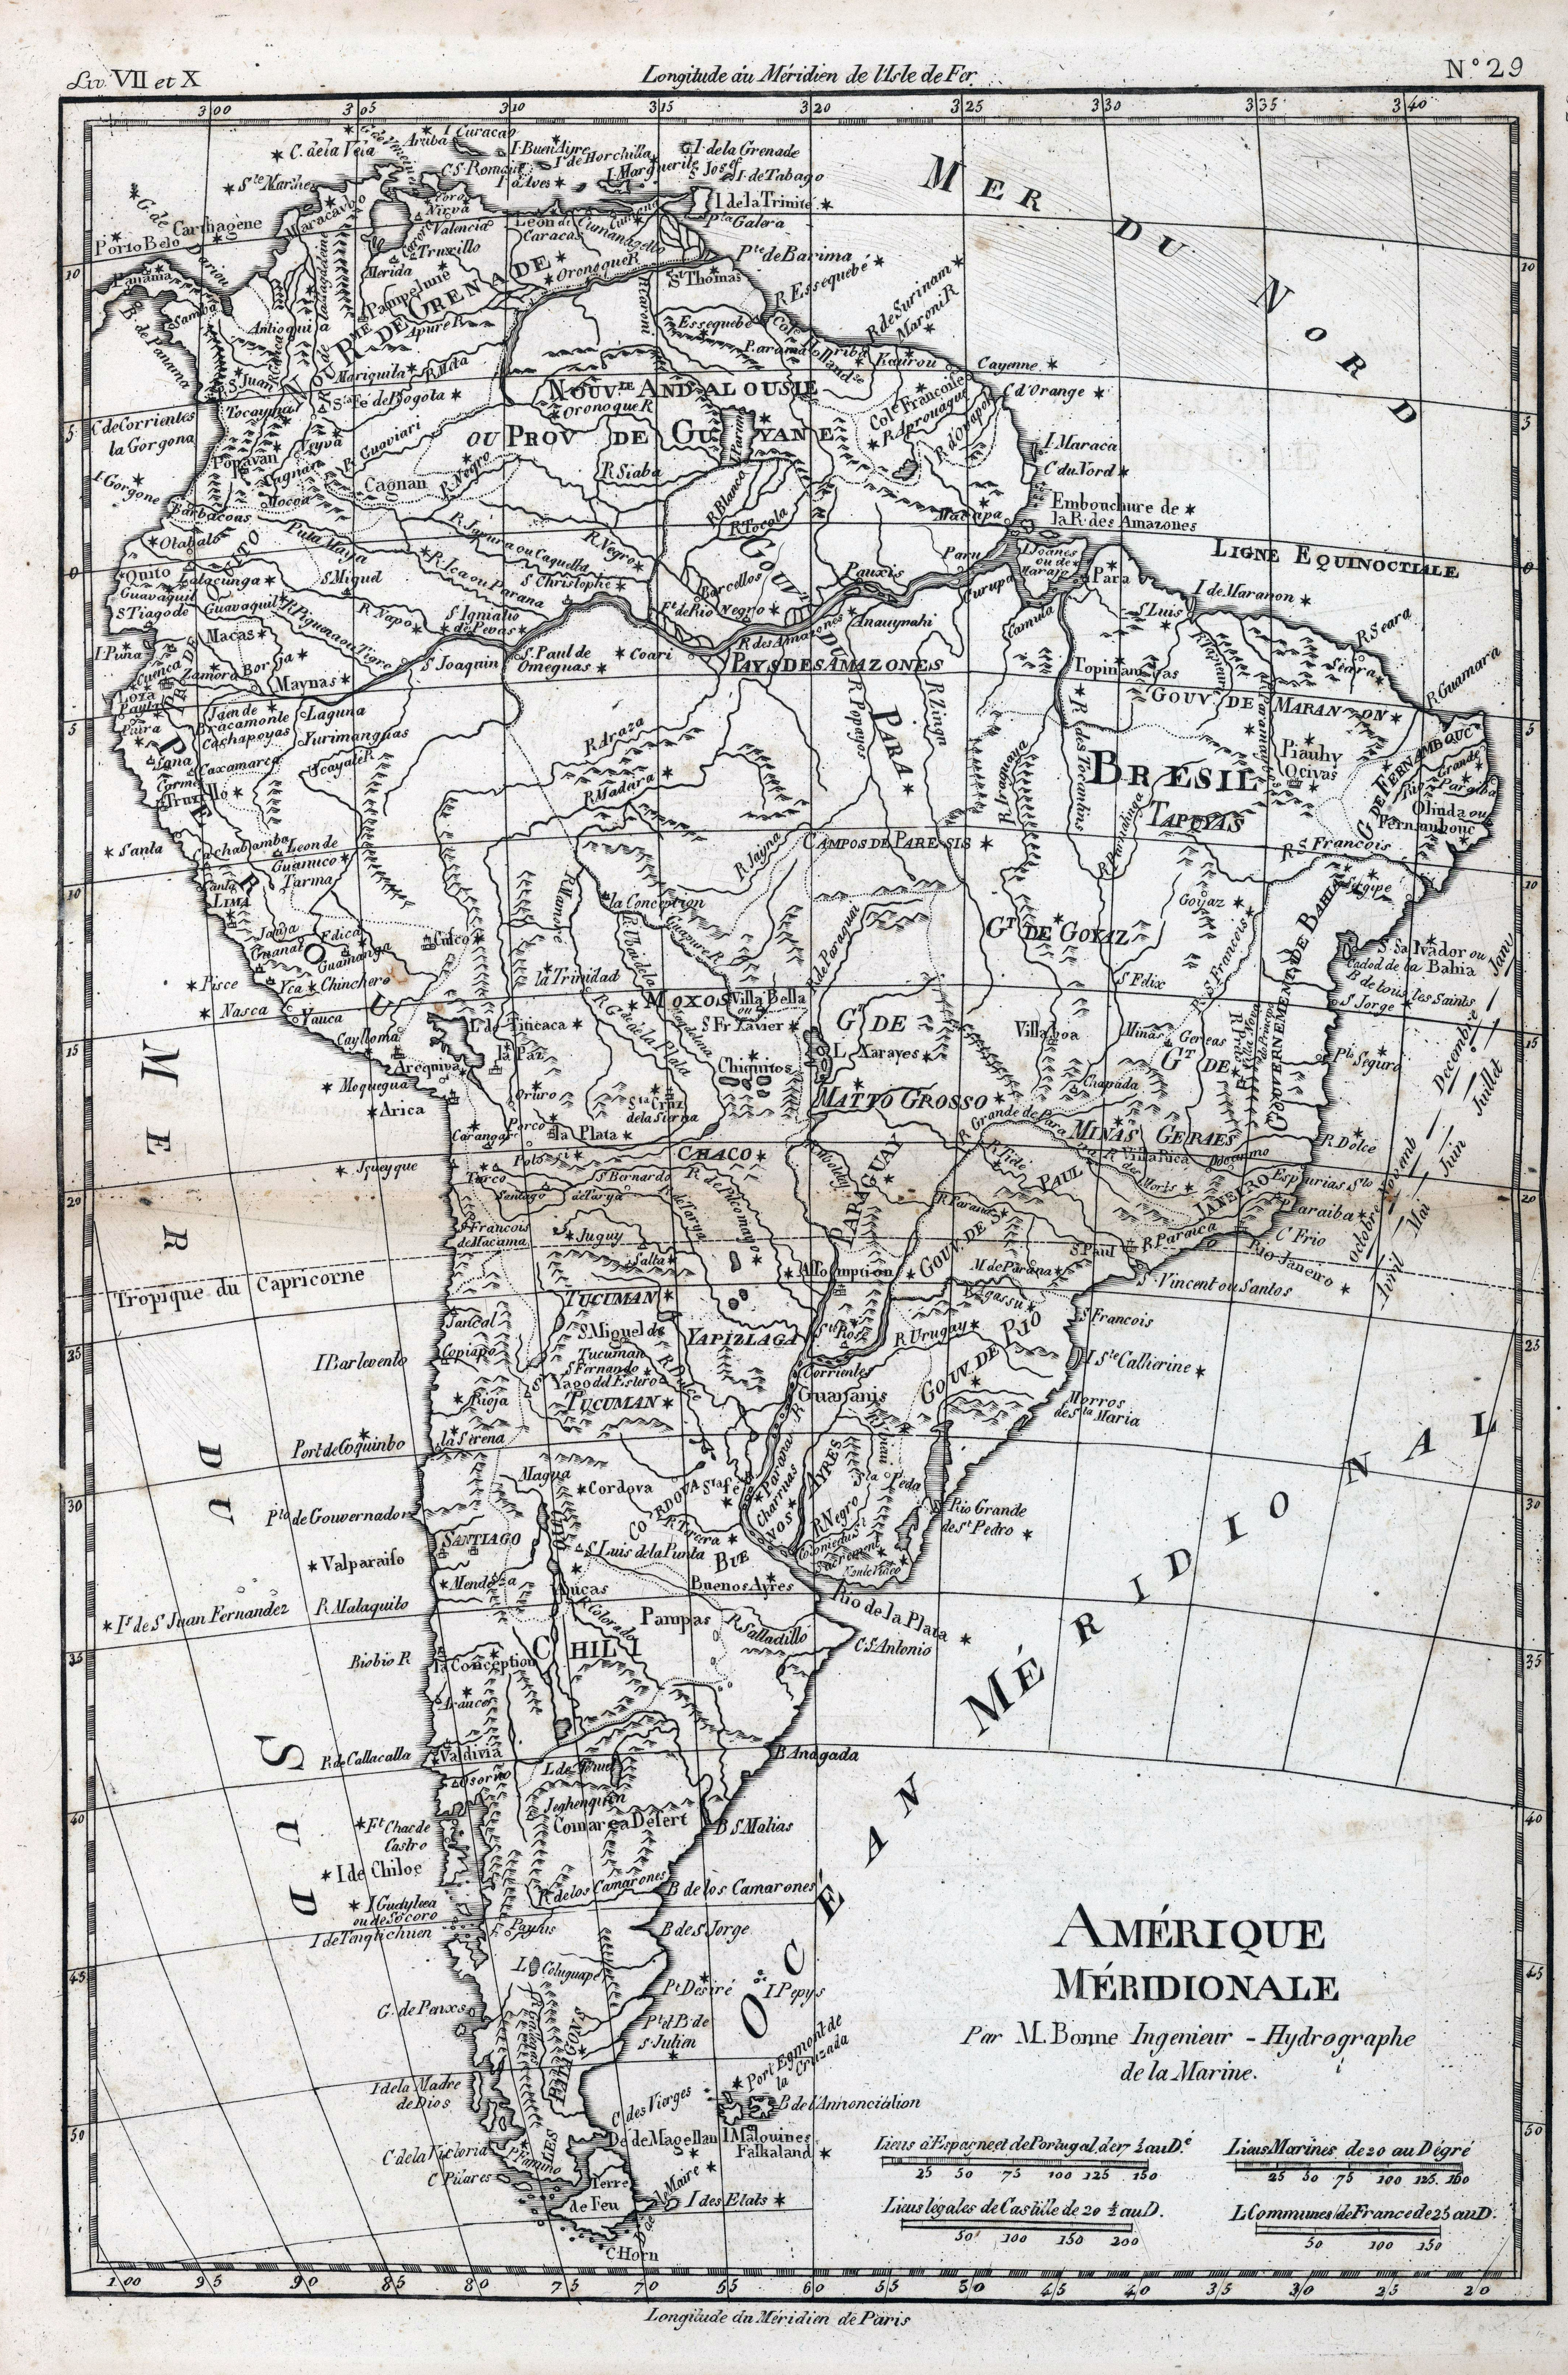 Tip Of South America Map.The British Empire And South America Maps